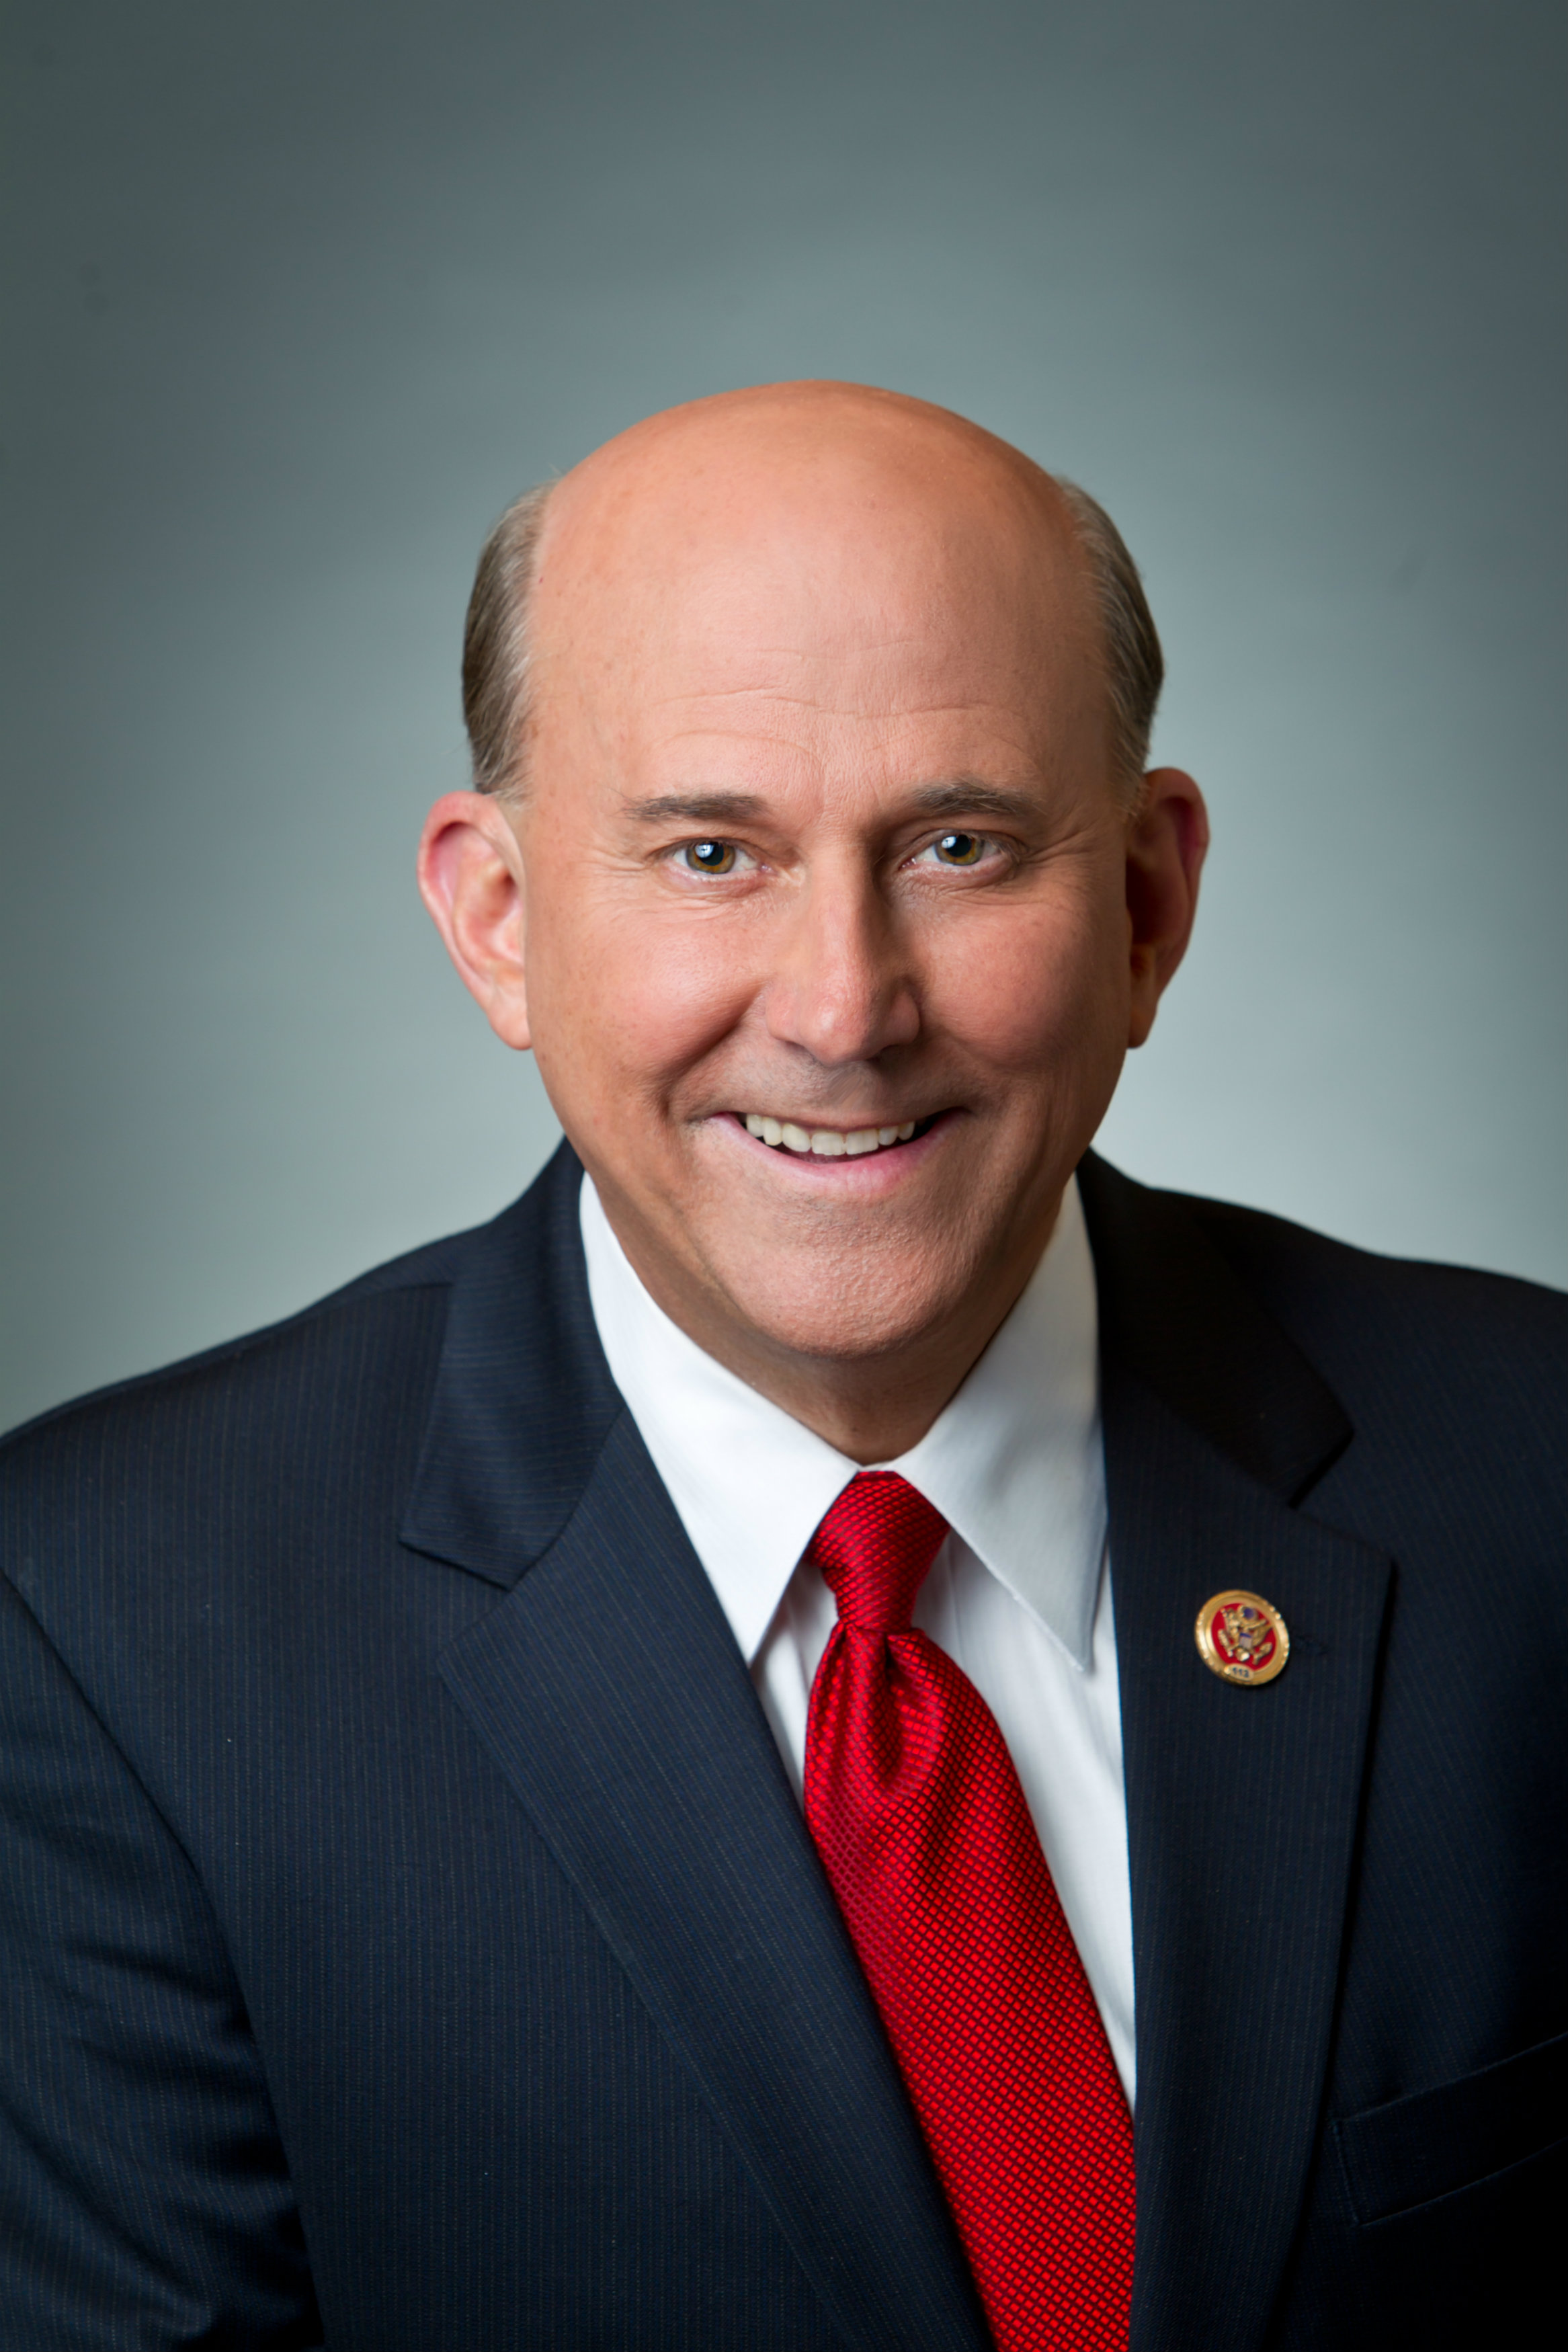 Official Portrait : U.S. Congressman Louie Gohmert